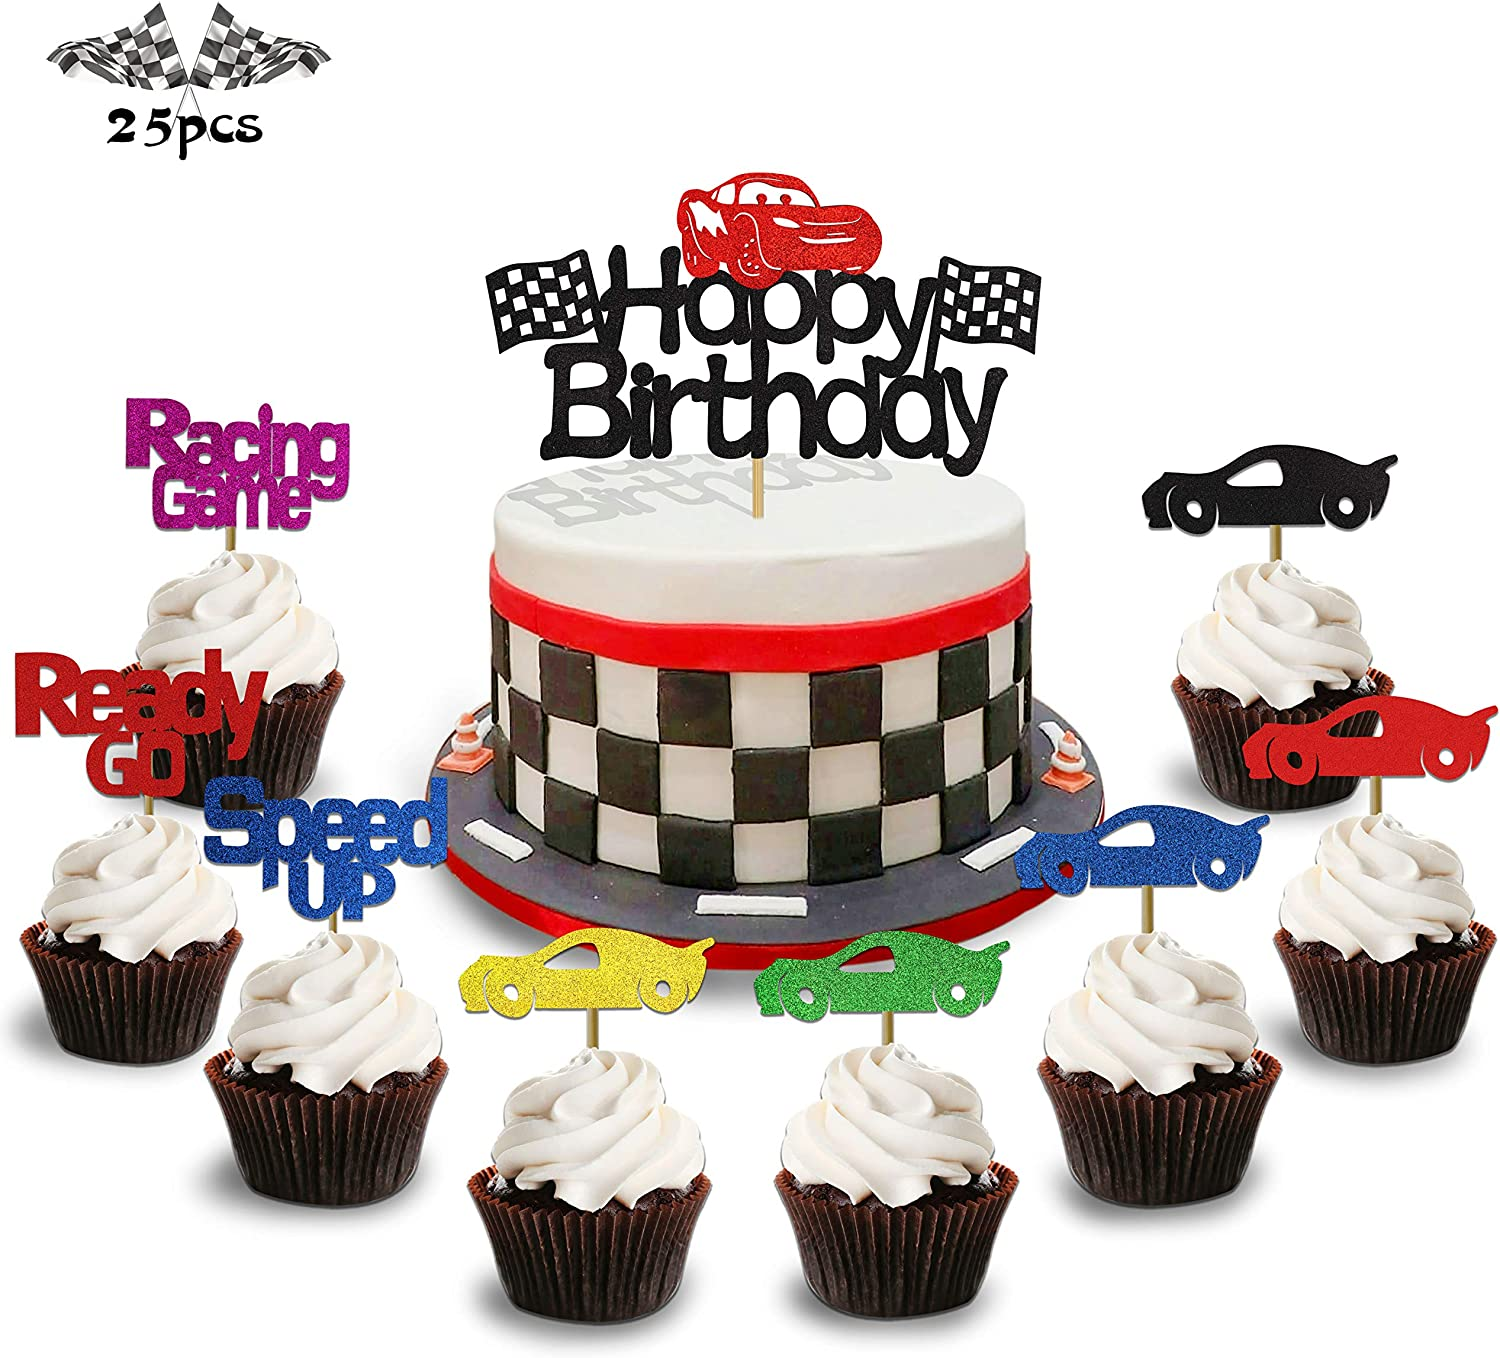 Super Amazon Com Kapokku Set Of 25 Racing Car Glitter Cake Cupcake Funny Birthday Cards Online Alyptdamsfinfo